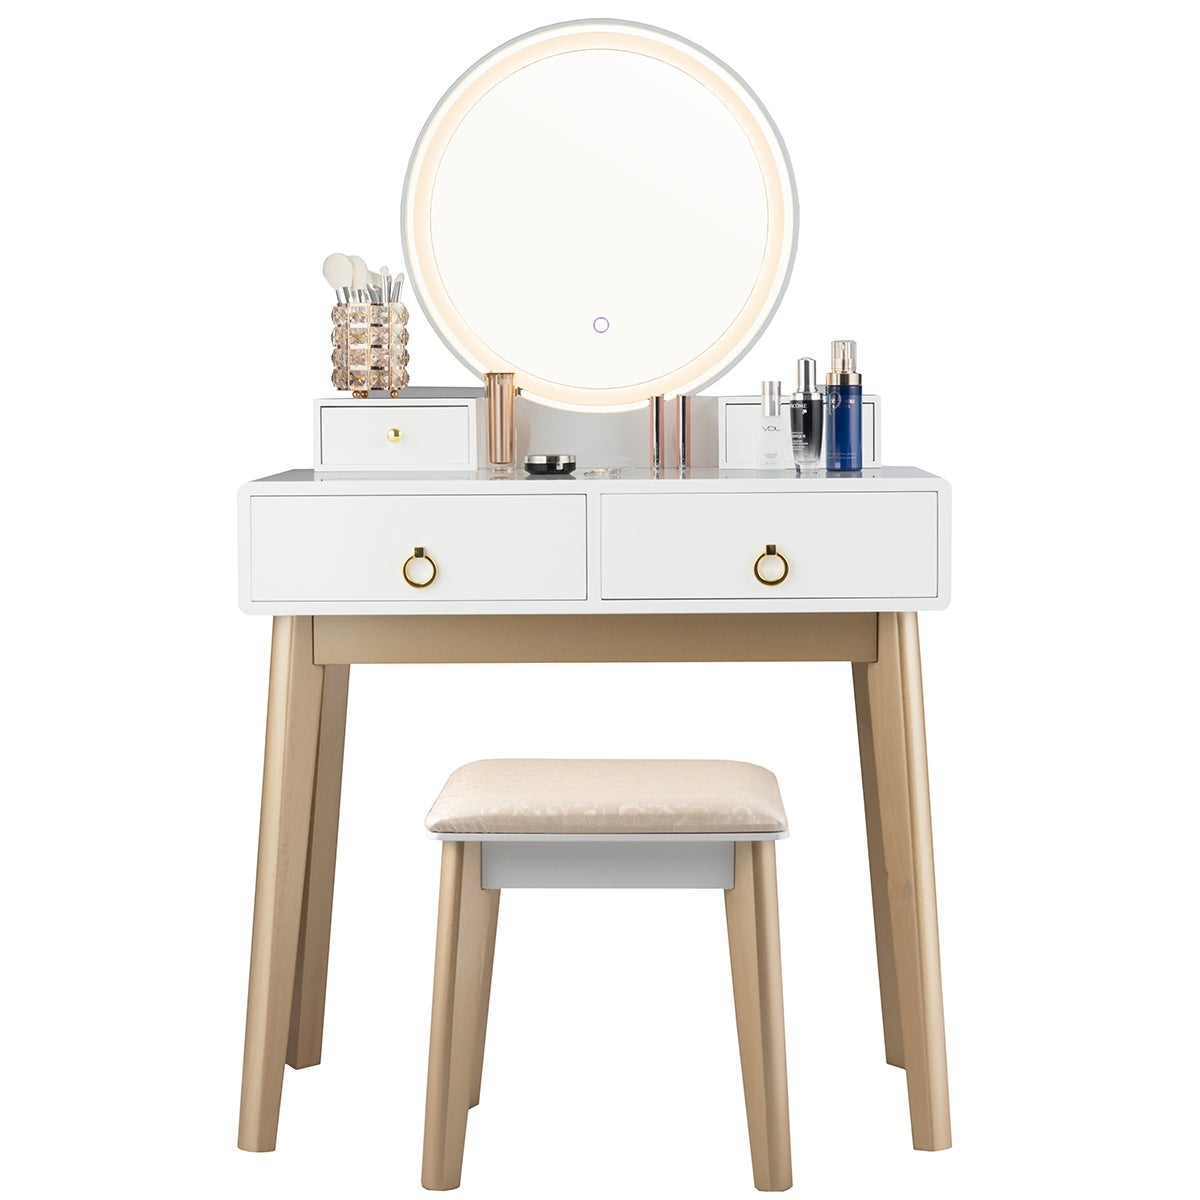 White 3 Piece Vanity Table Set With Adjustable Led Light N A On Sale Overstock 30913005